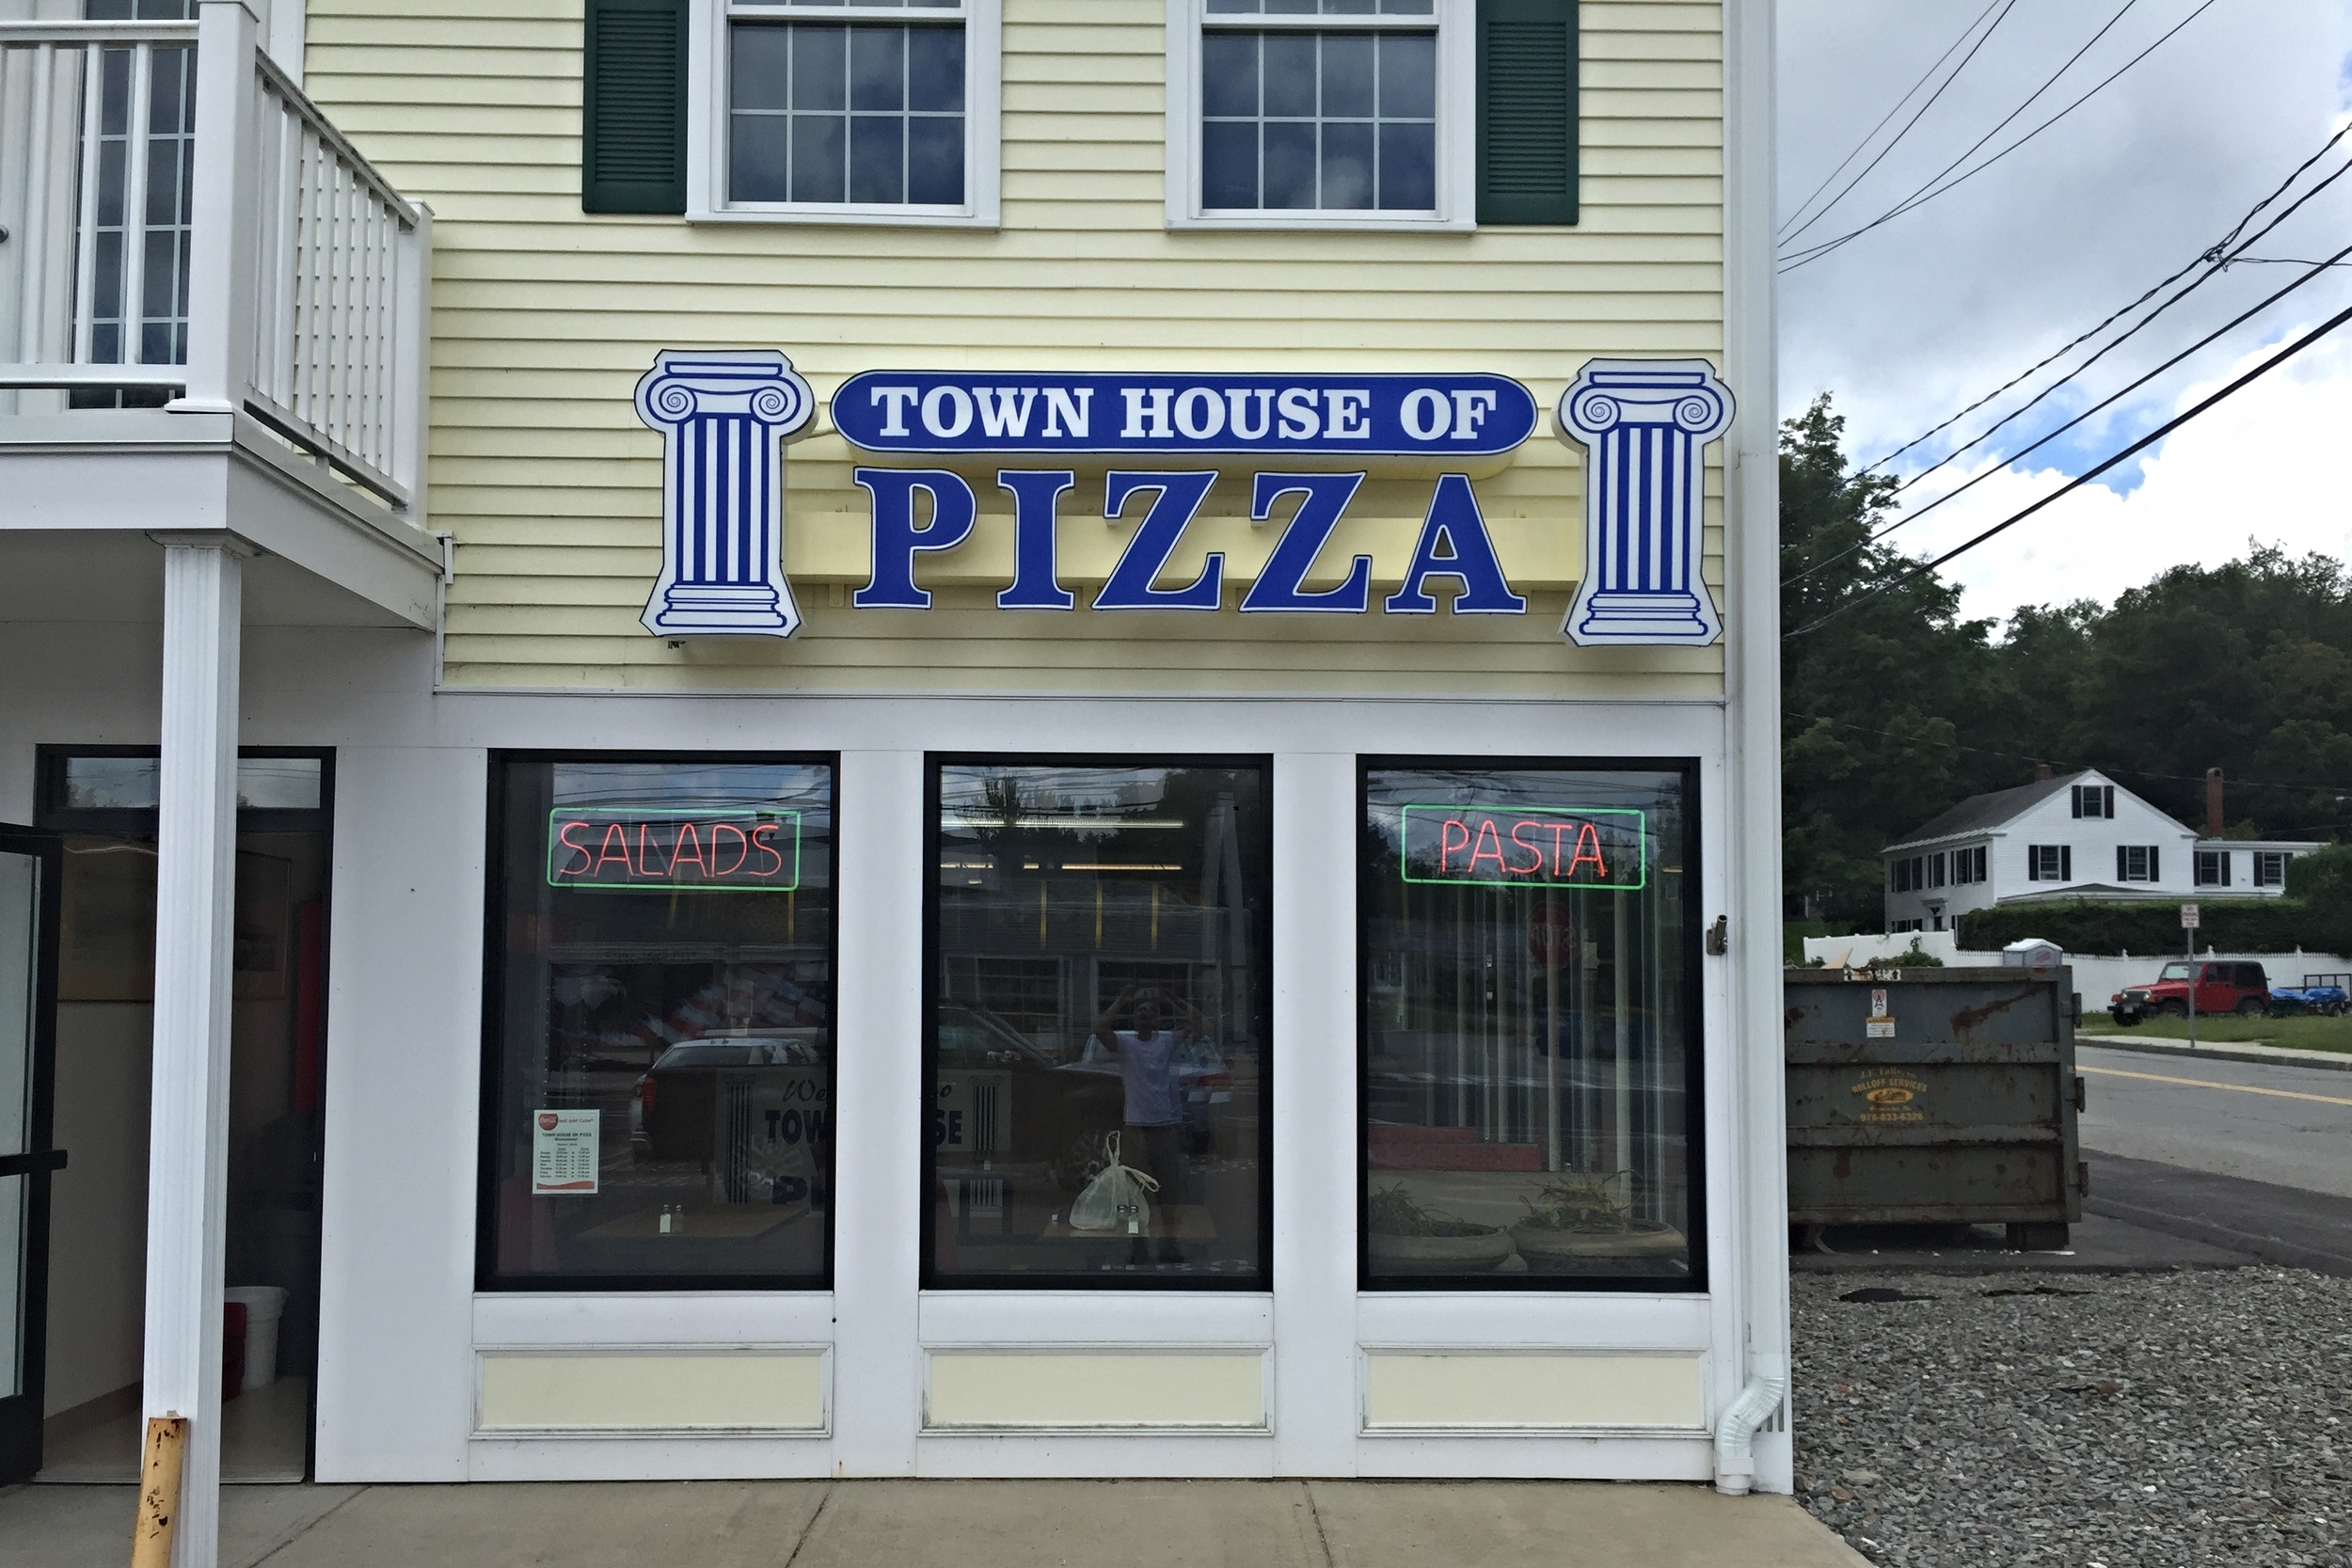 Town House of Pizza.jpg